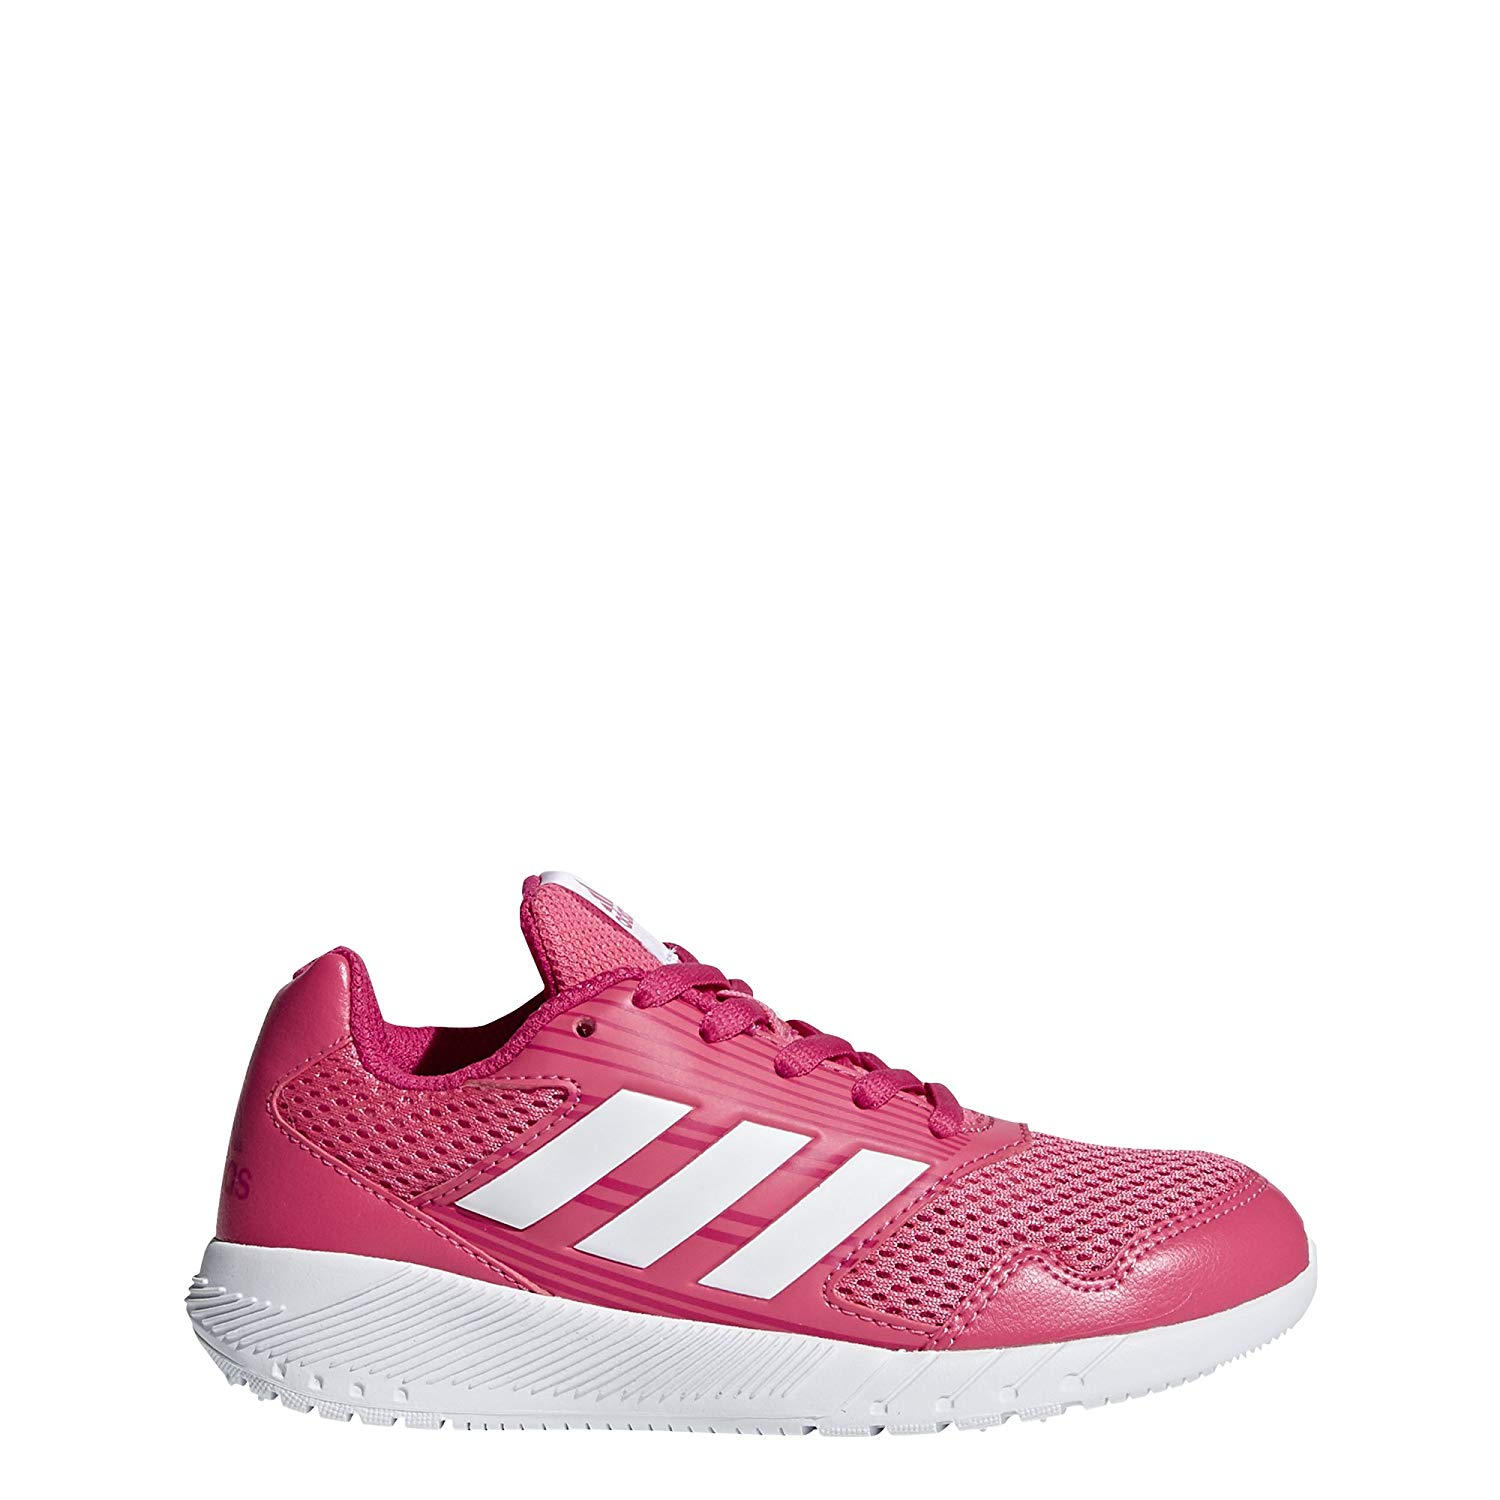 172e92e60017 Details about Kids Adidas Girls Altarun Low Top Lace Up Running